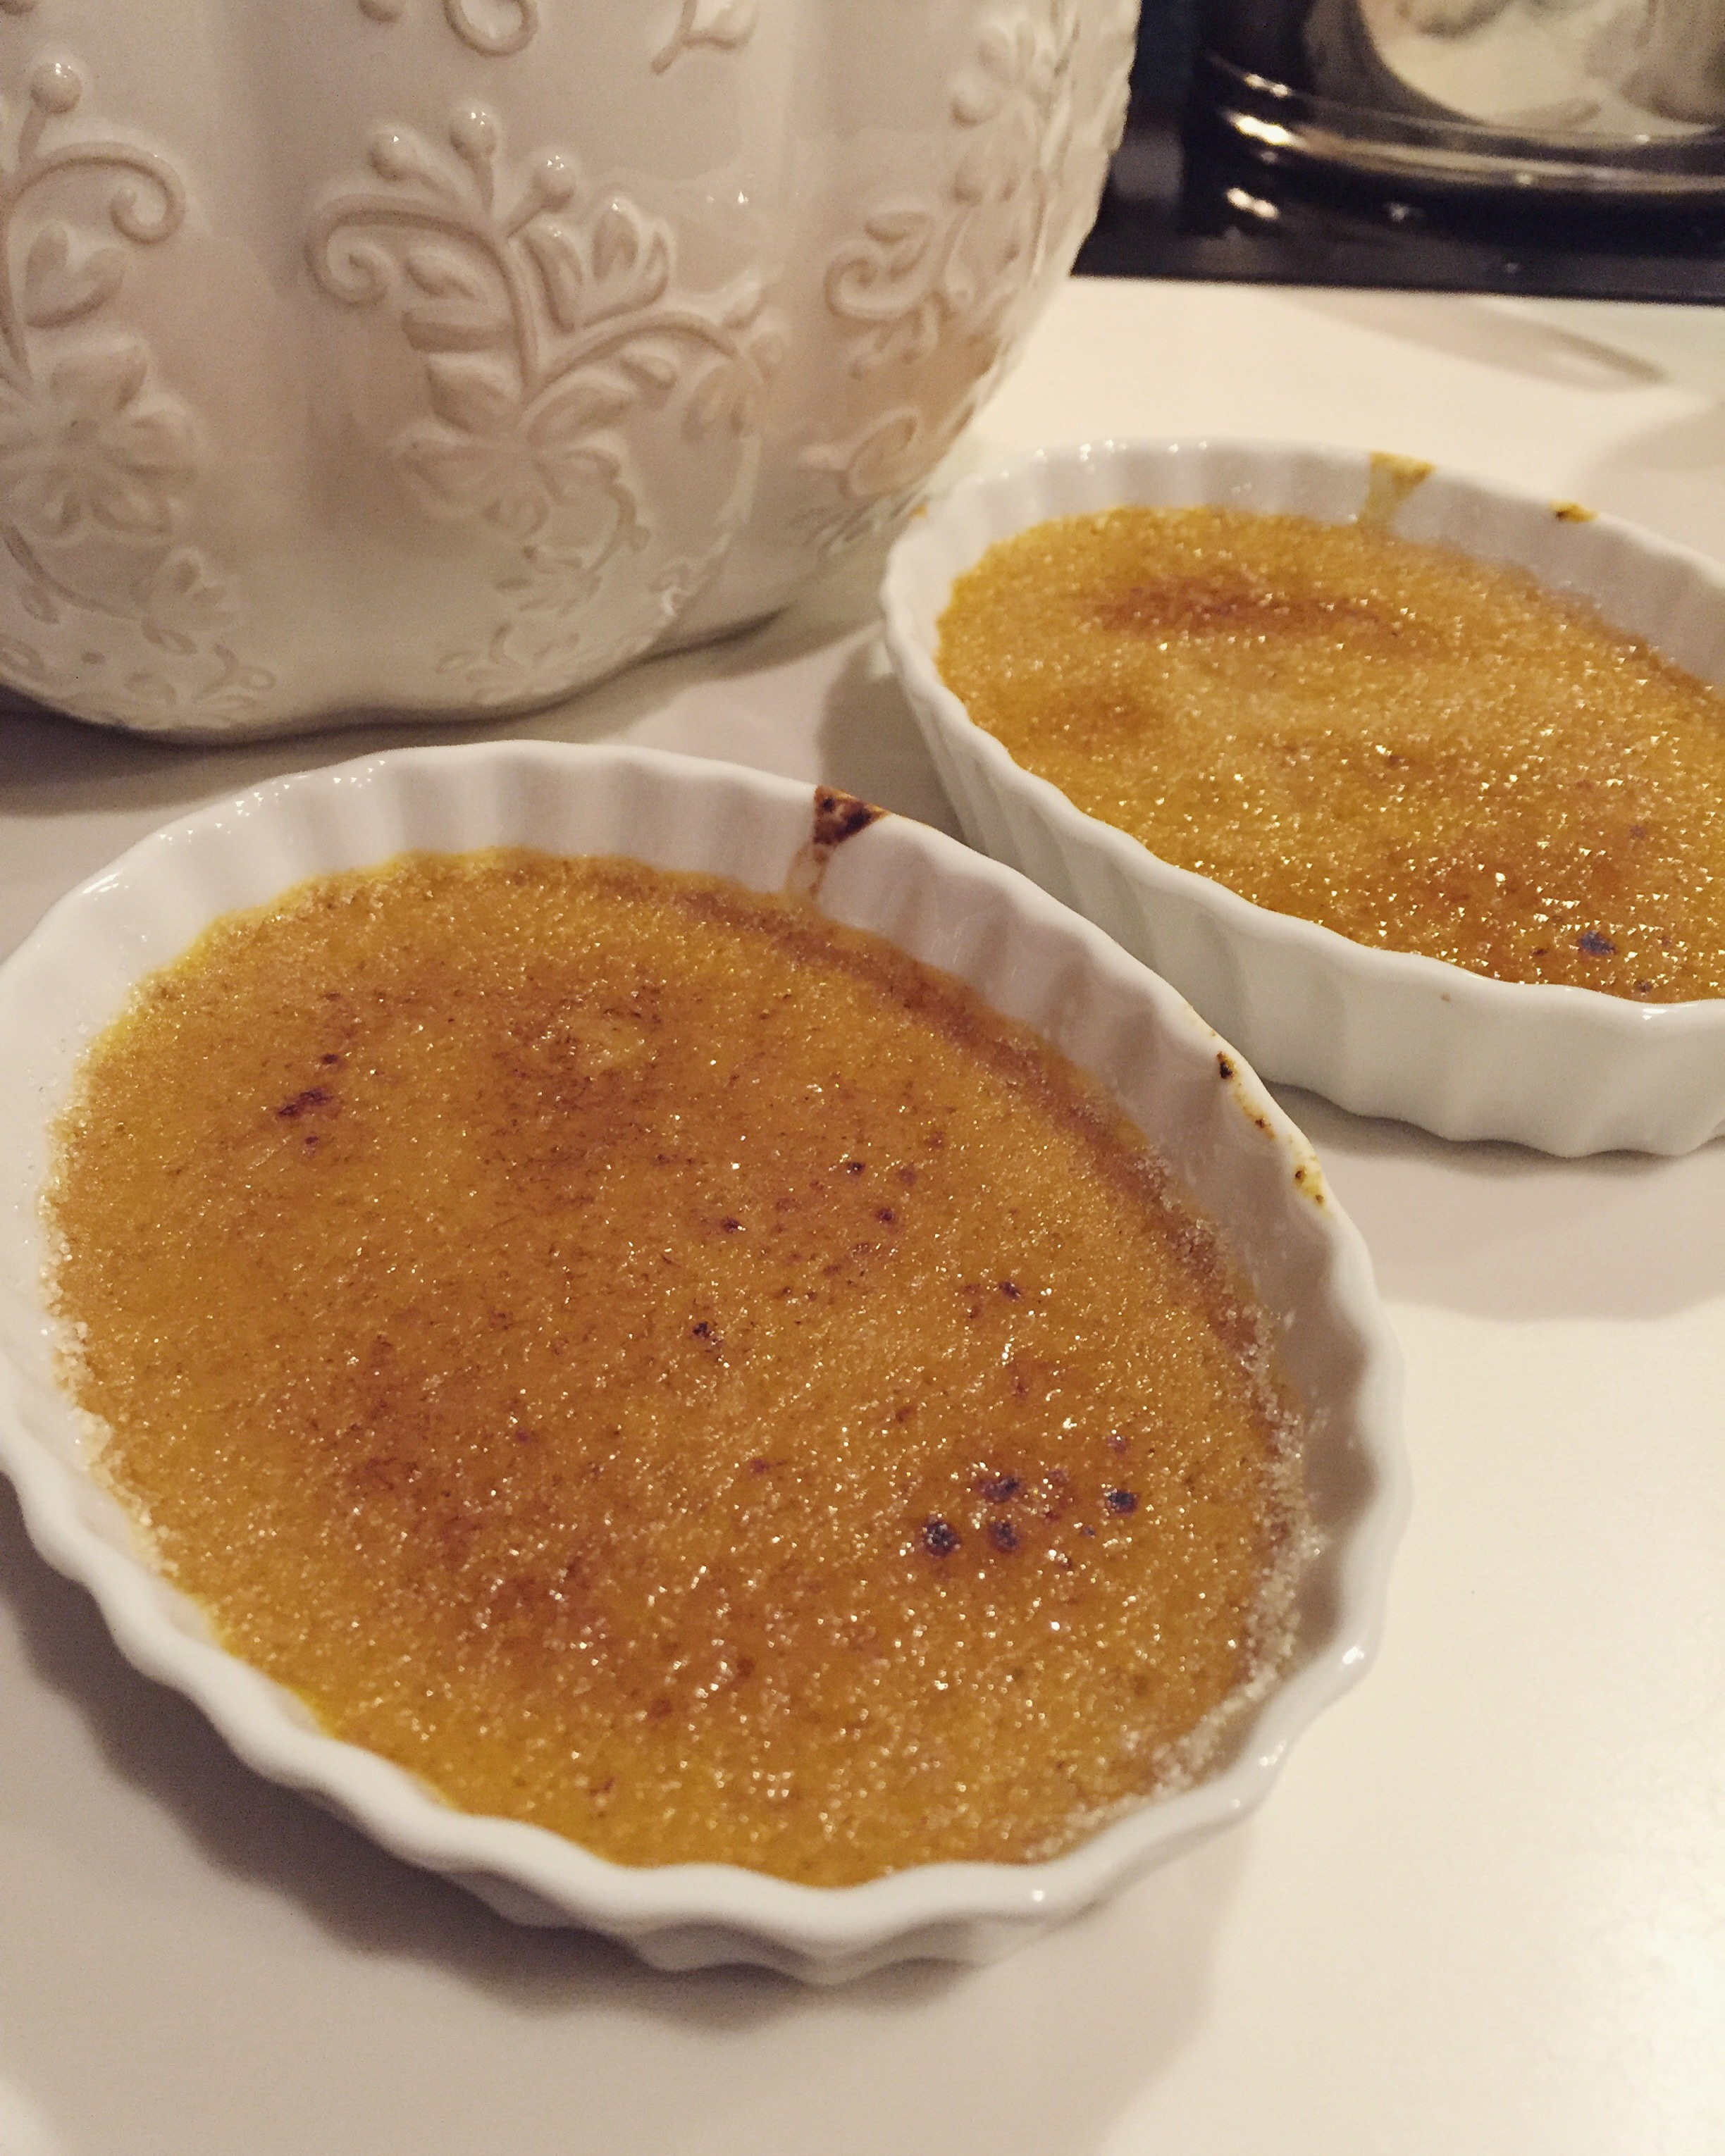 JC_PumpkinCremeBrulee.JPG